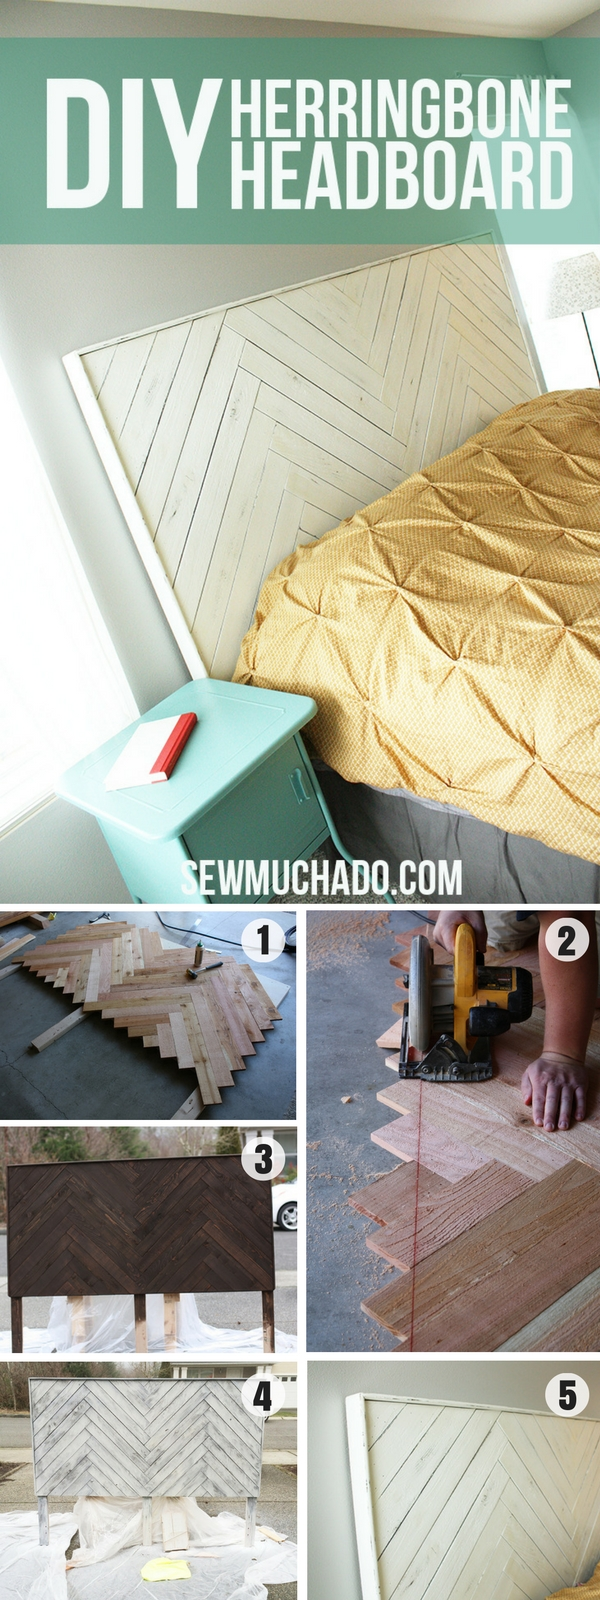 Check out how to make this easy DIY Herringbone Headboard